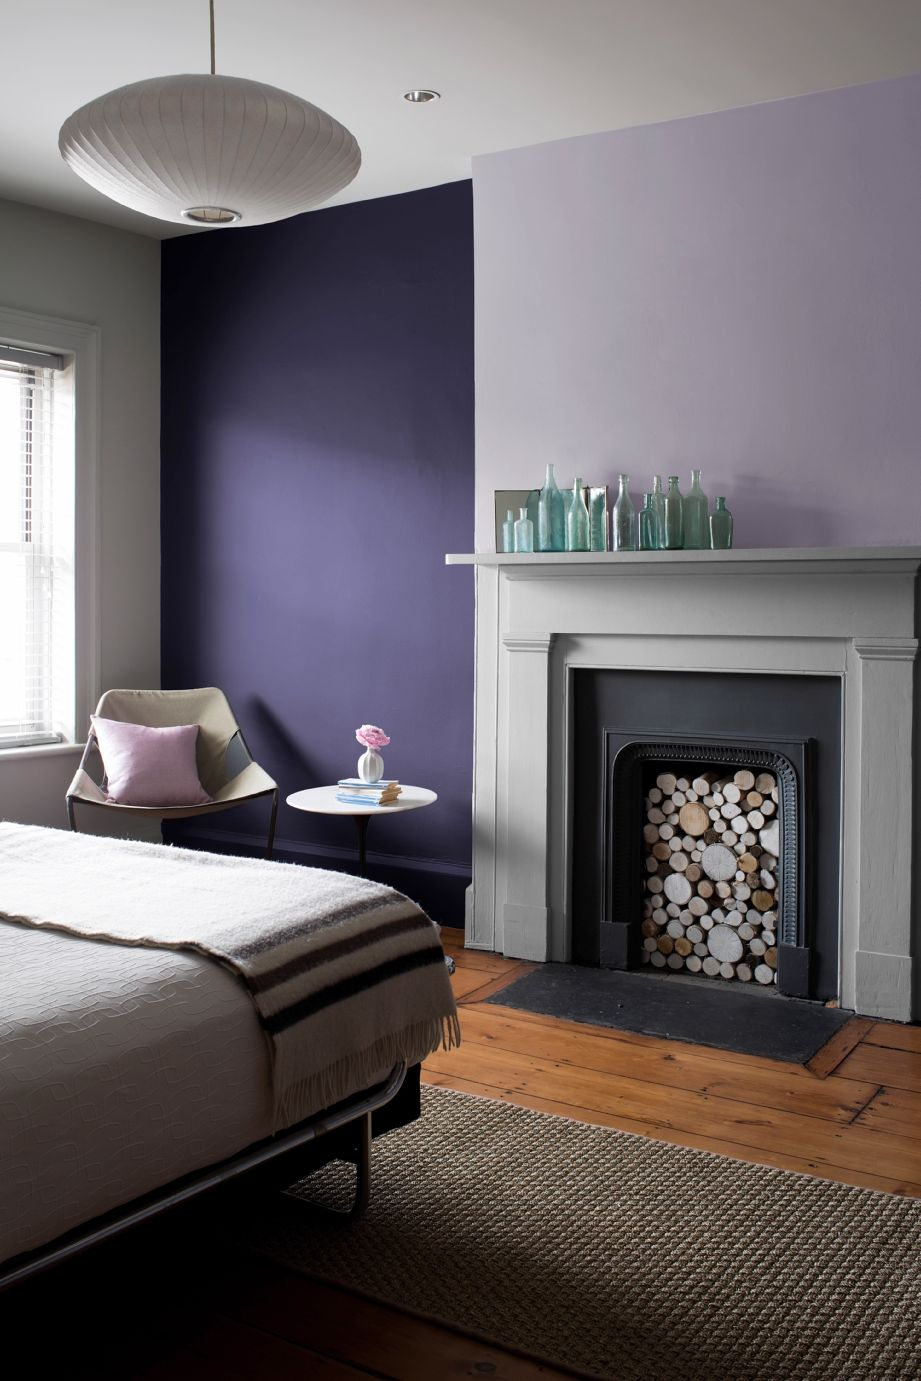 Paints Amp Exterior Stains Bedroom Wall Purple Walls